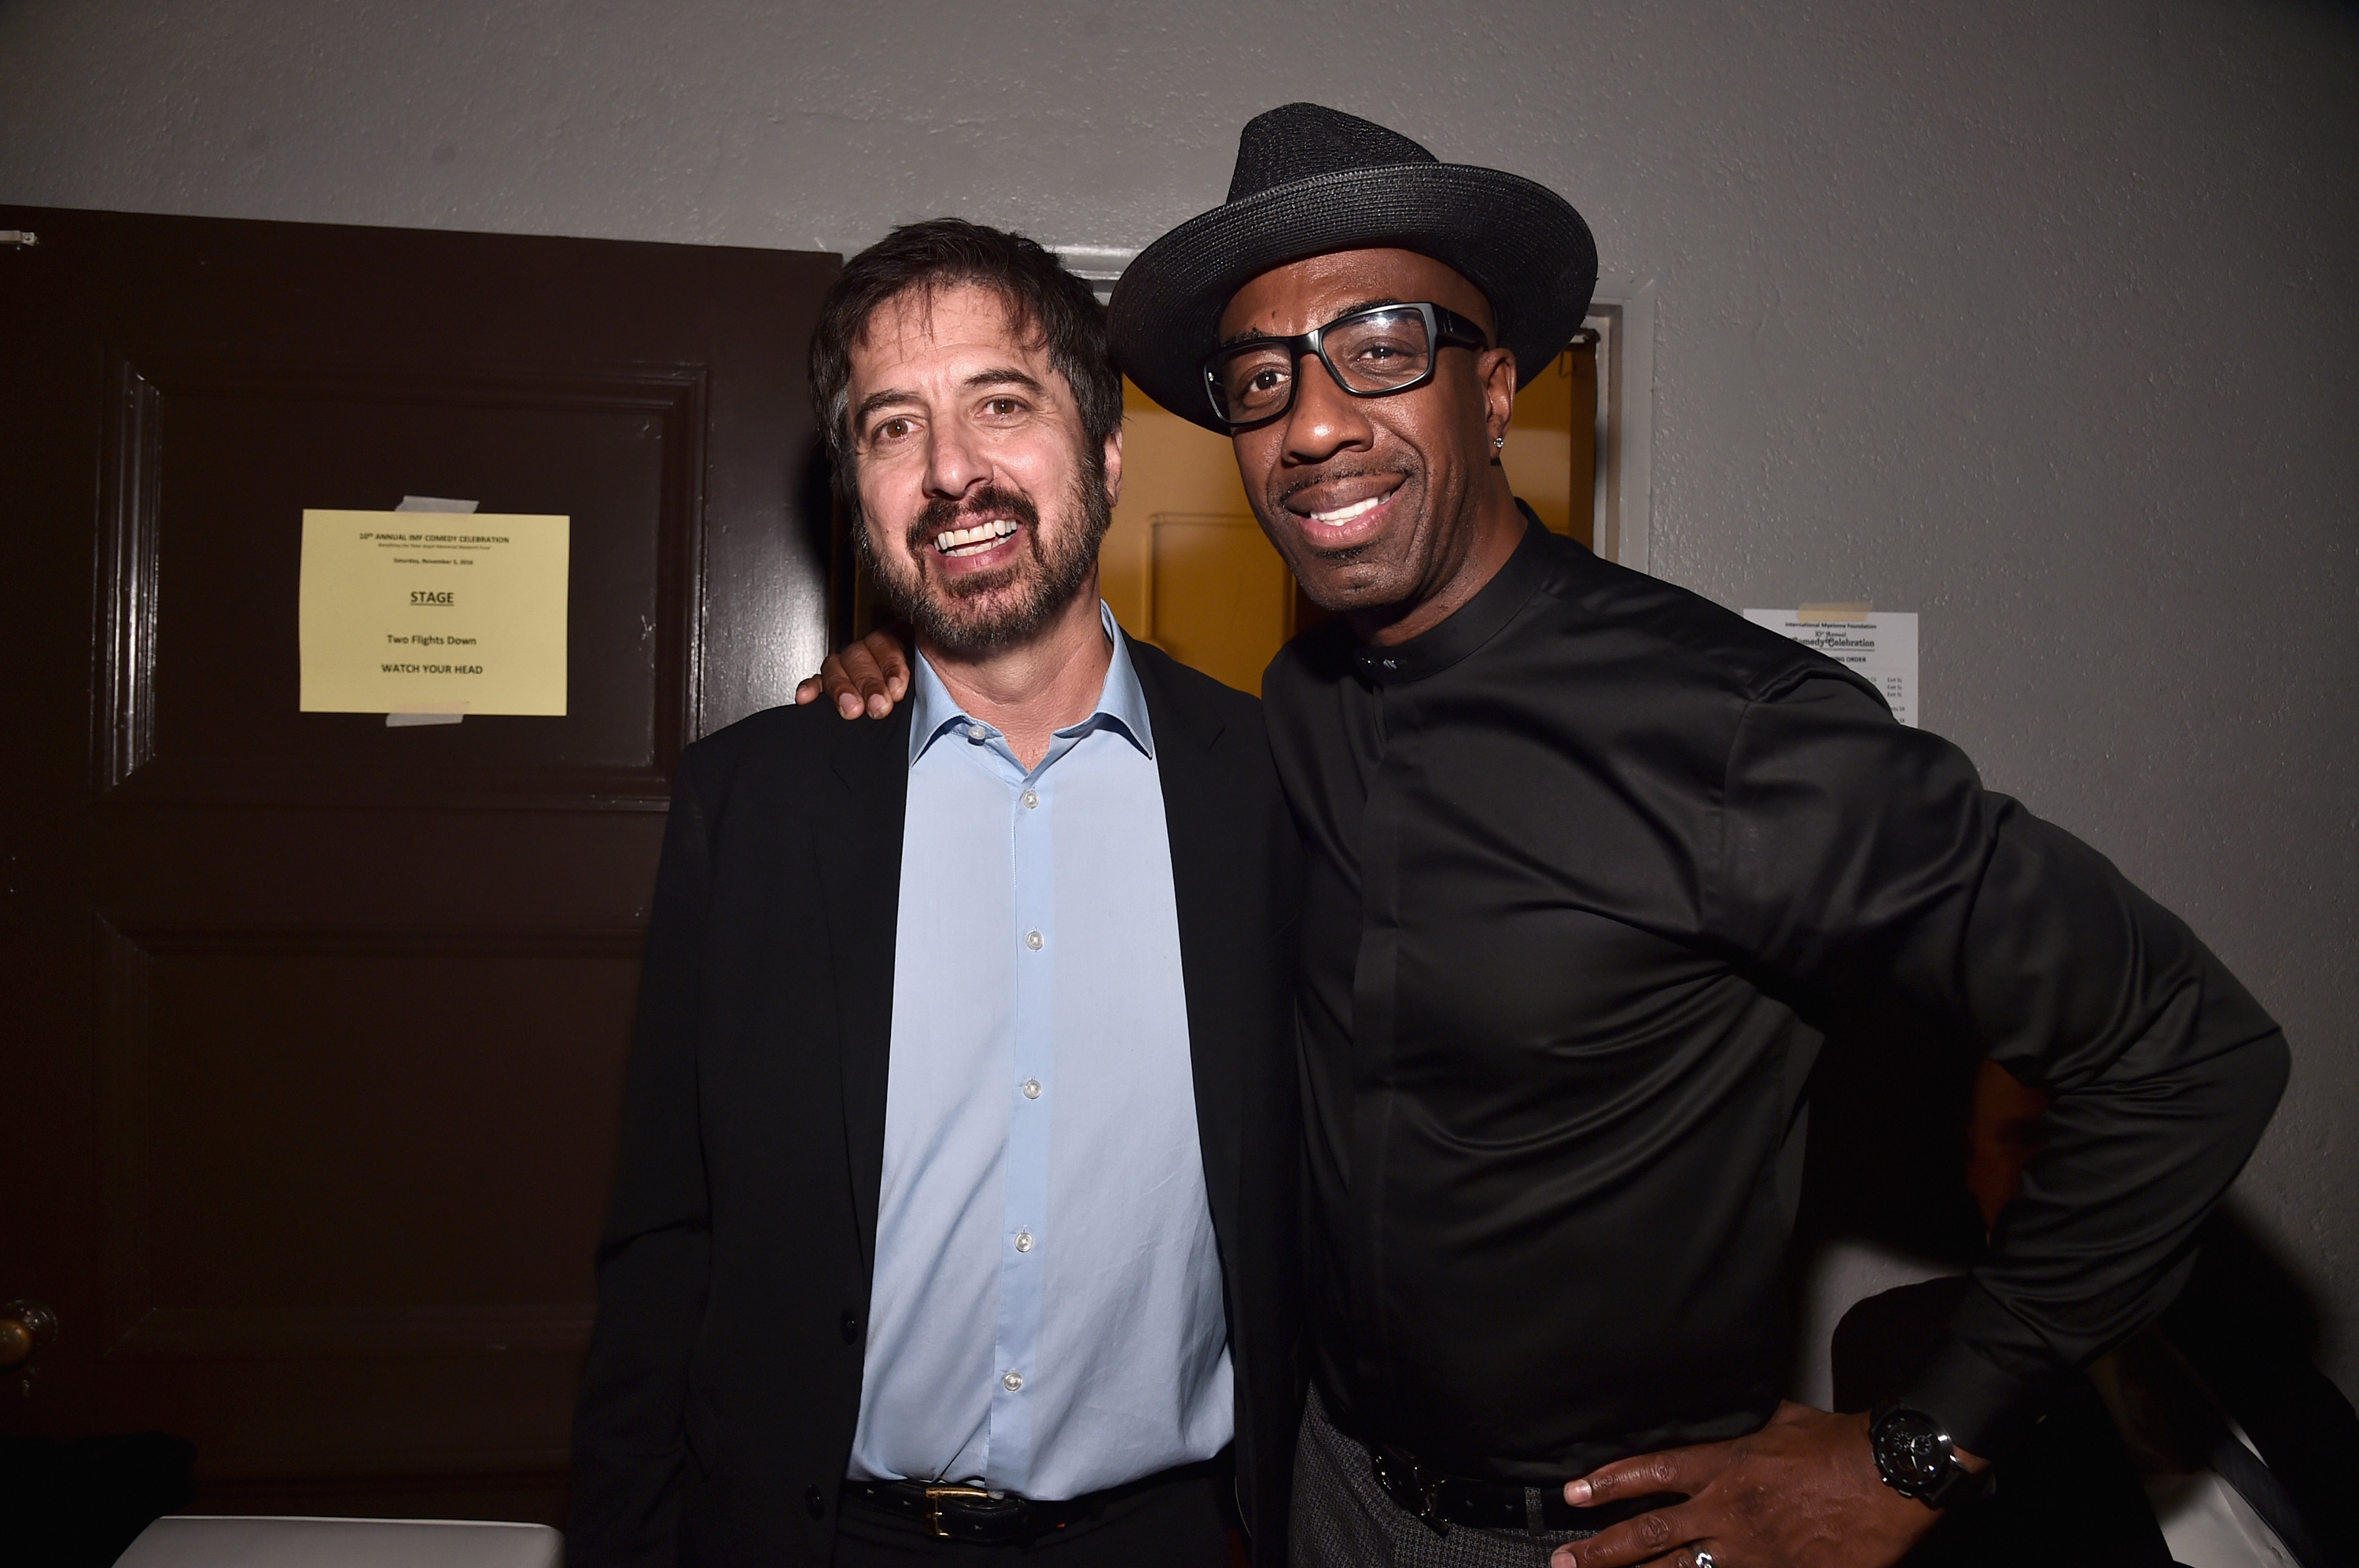 LOS ANGELES, CA - NOVEMBER 05: Host Ray Romano and comedian JB Smoove attends the International Myeloma Foundation 10th Annual Comedy Celebration at the Wilshire Ebell Theatre on November 5, 2016 in Los Angeles, California. (Photo by Alberto E. Rodriguez/Getty Images for International Myeloma Foundation )